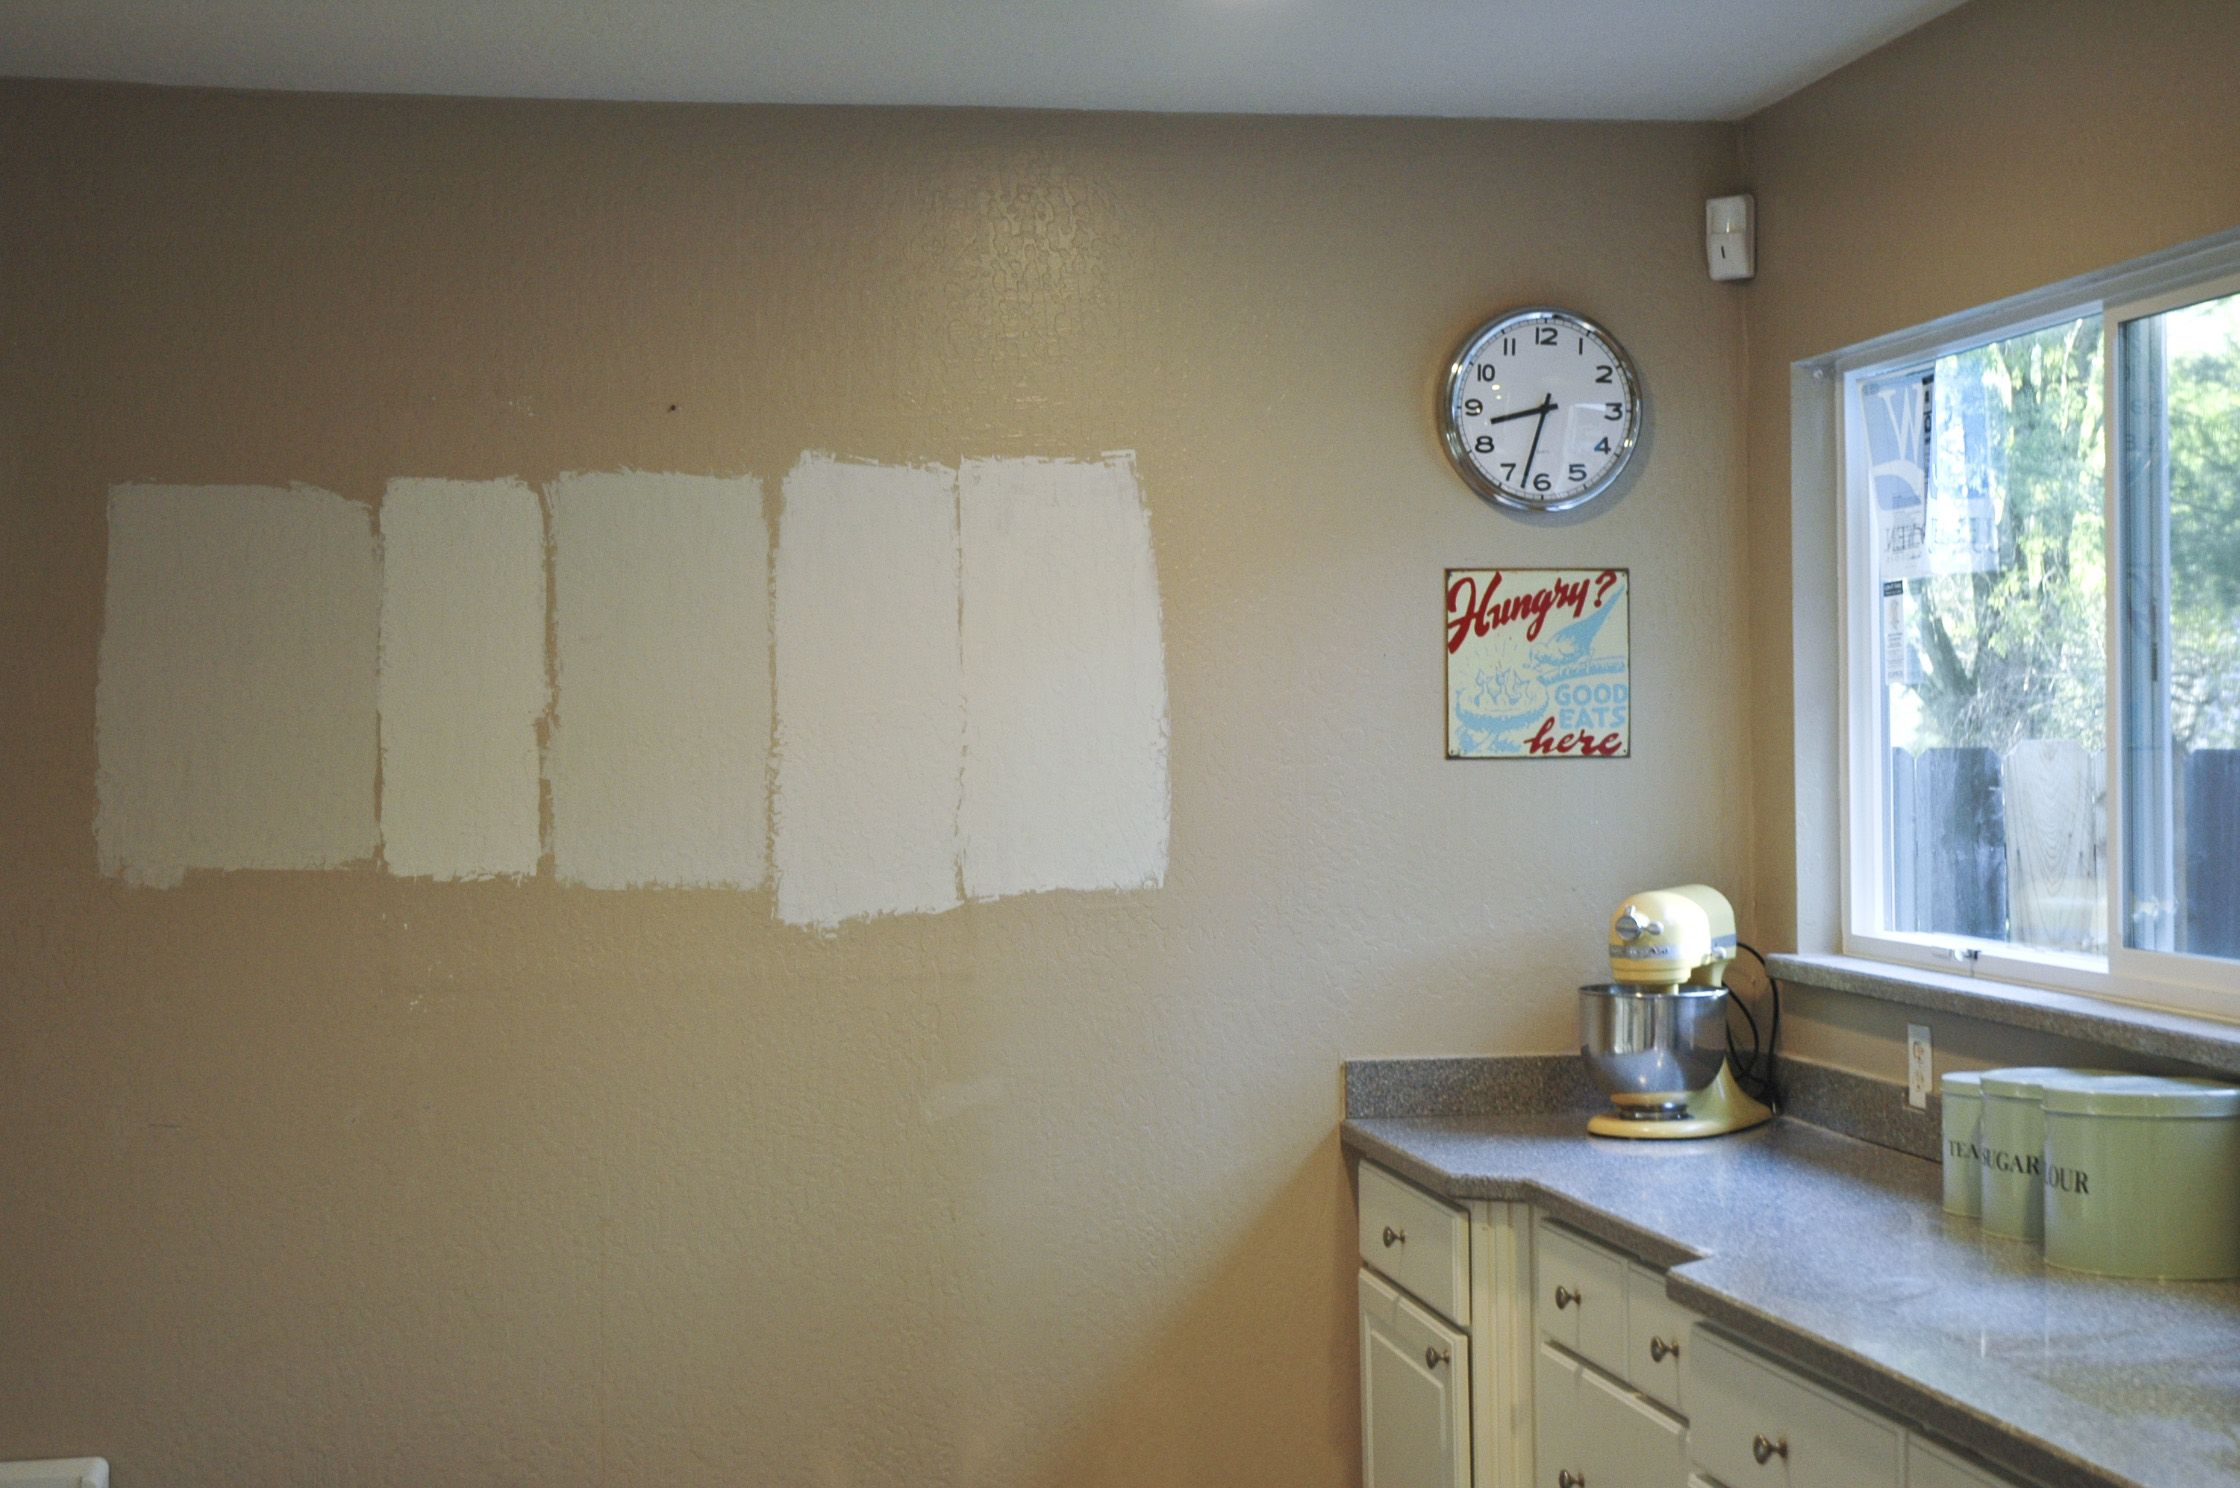 Sherwin williams perfect greige ideas pictures remodel - Perfect Greige Benjamin Moore Silver Satin Balboa Mist